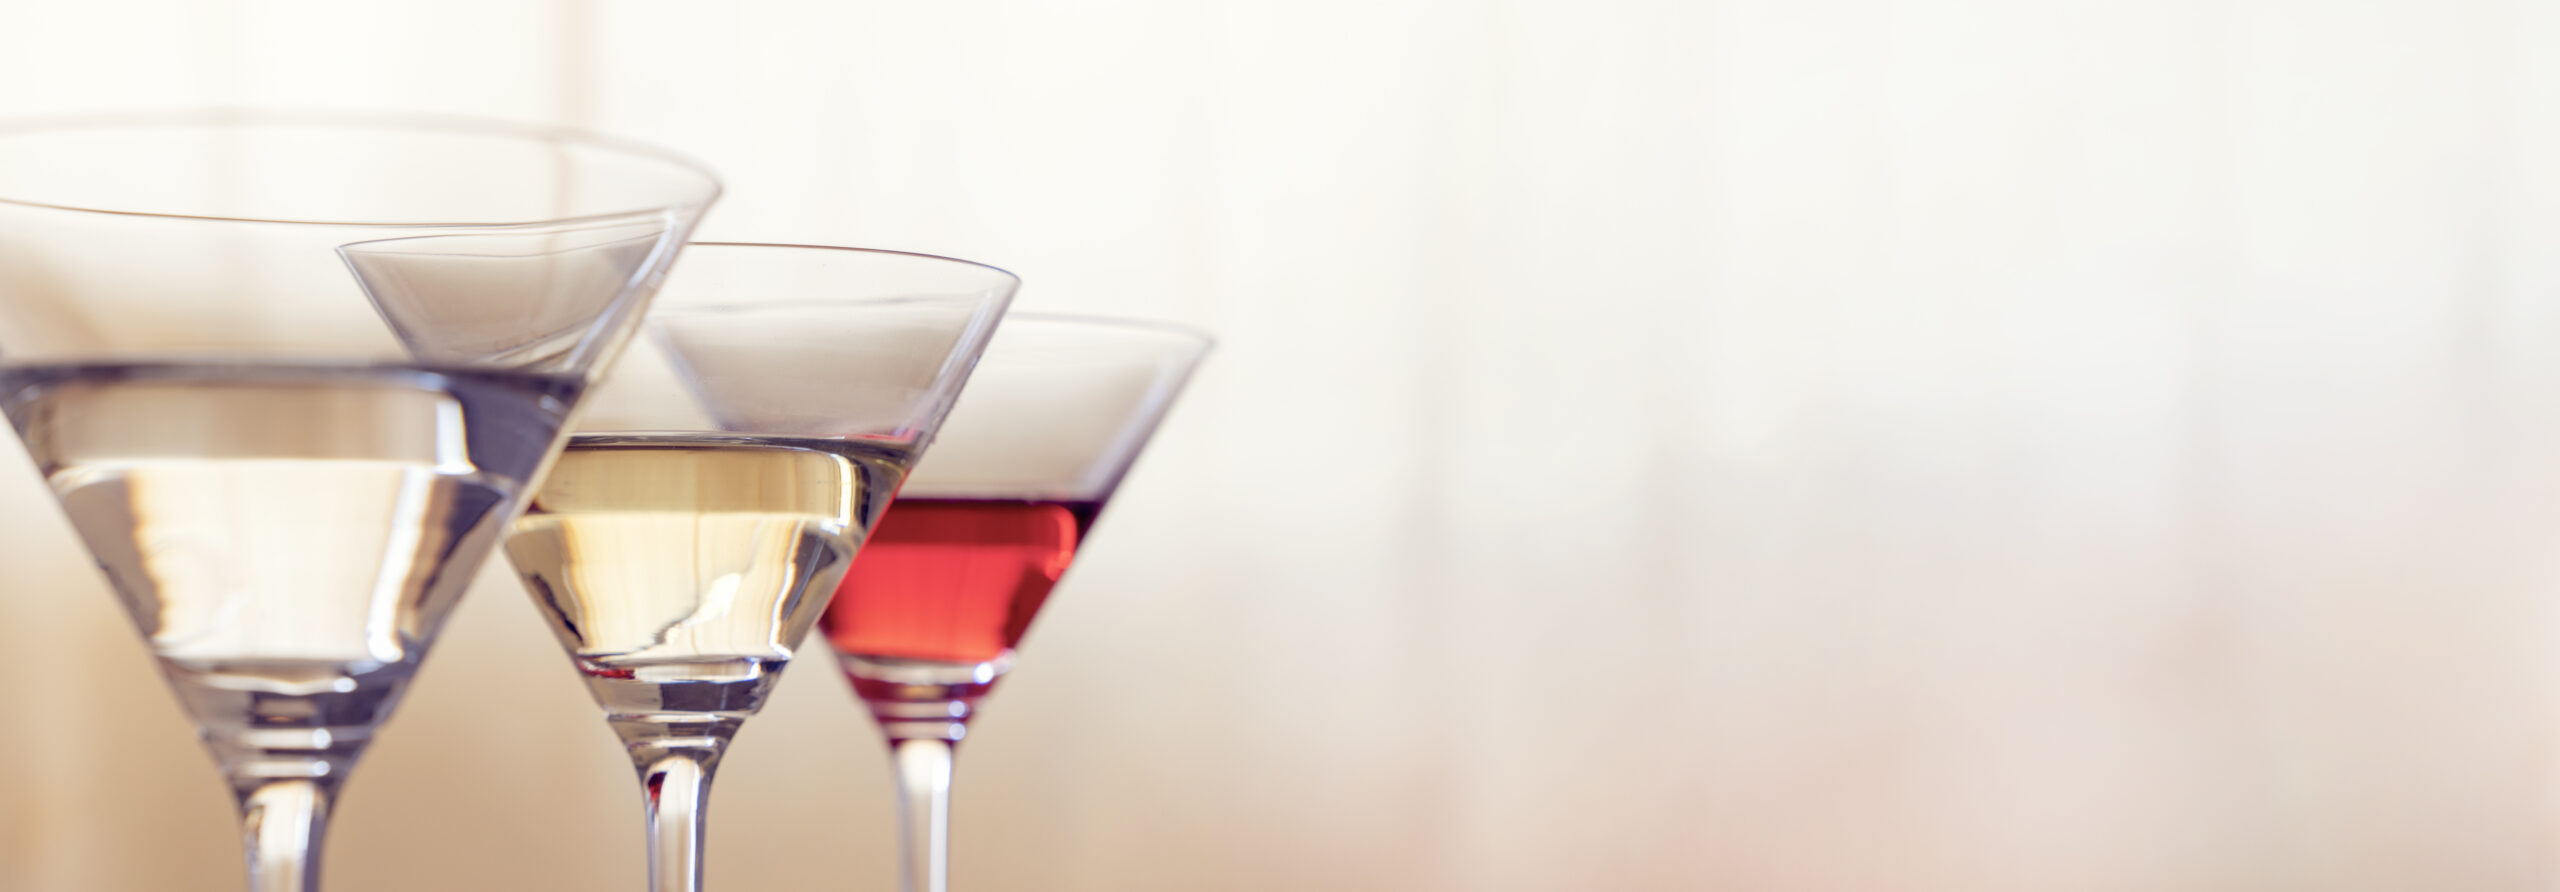 Three martini glasses with recipes made at home